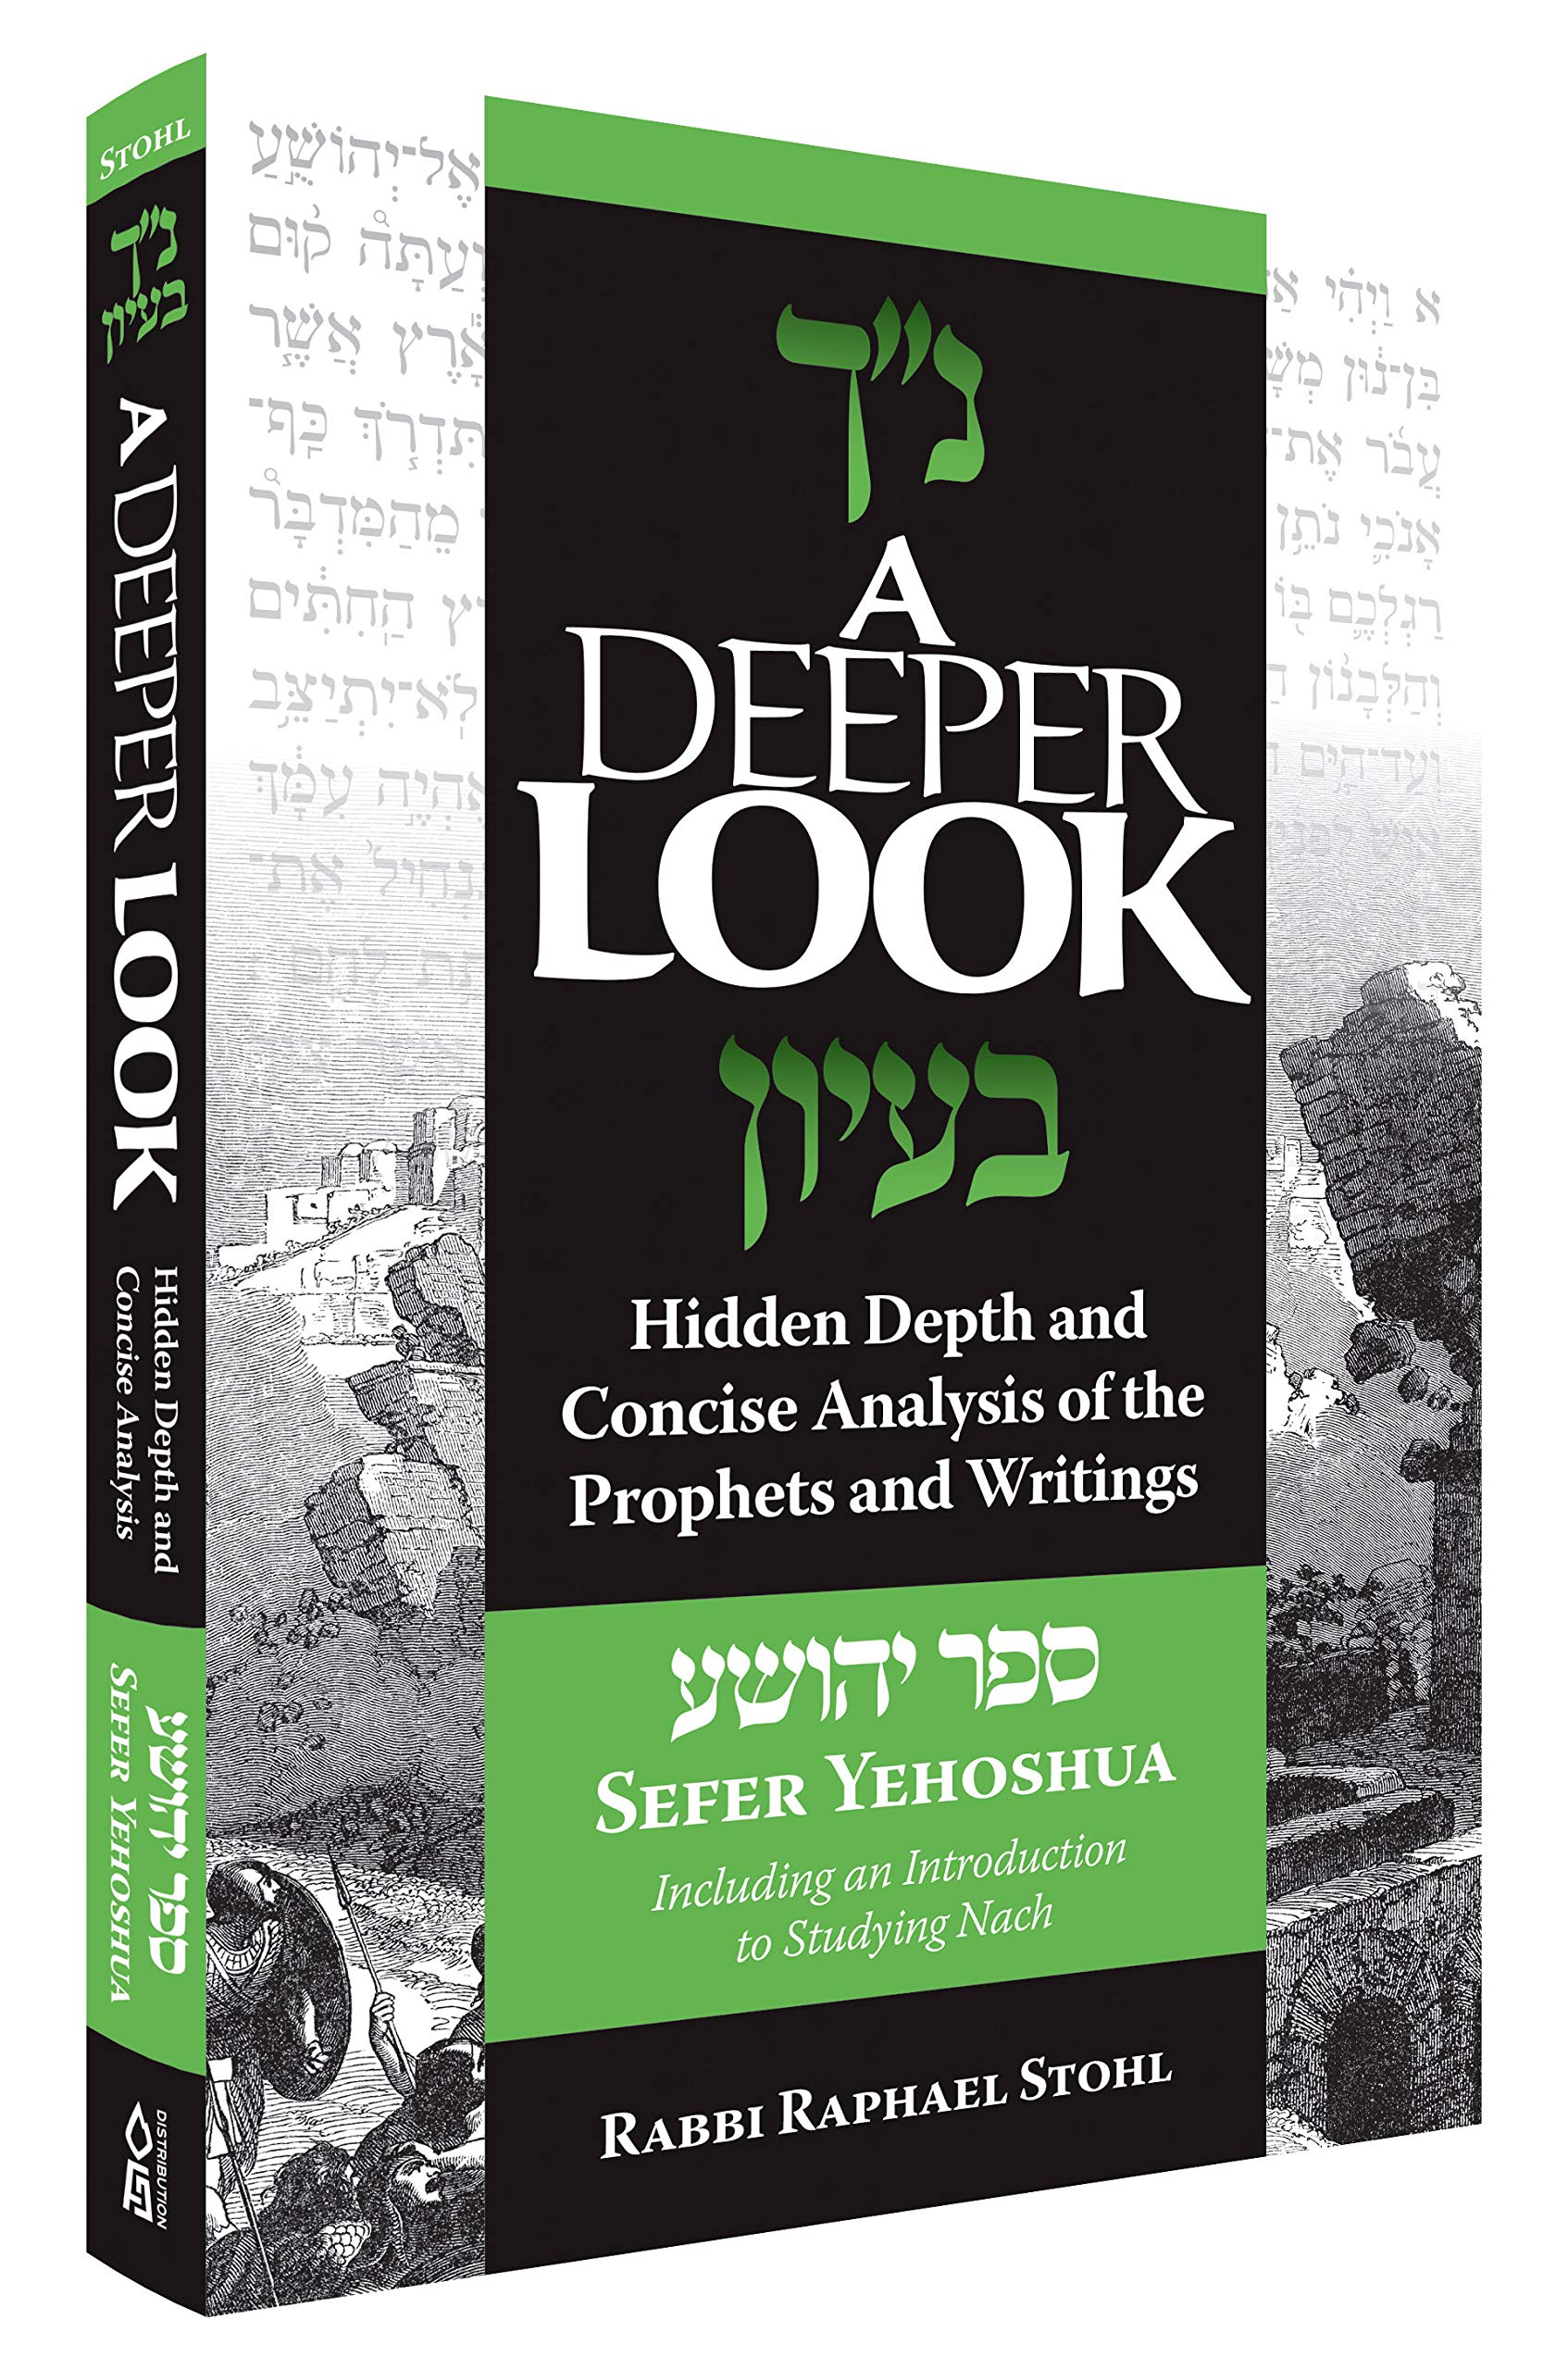 A Deeper Look, Yehoshua: Hidden Depth and Concise Analysis of the Prophets and Writings by Rabbi Raphael Stohl